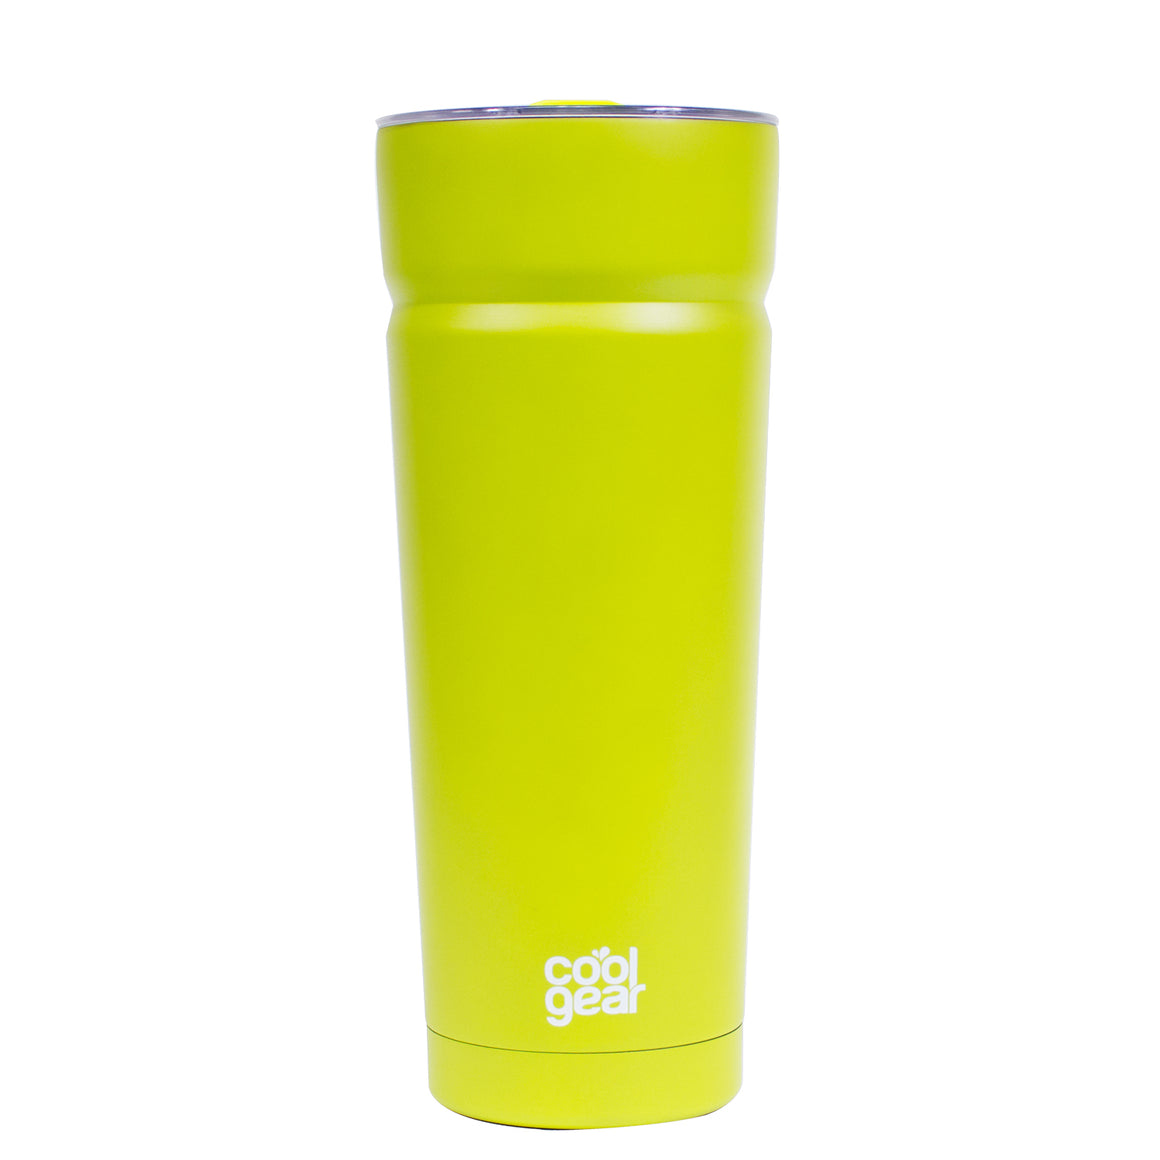 Bright Pink Cayambe 30 Oz Tumbler With Lid at Cool Gear Tumblers,Stainless Steel